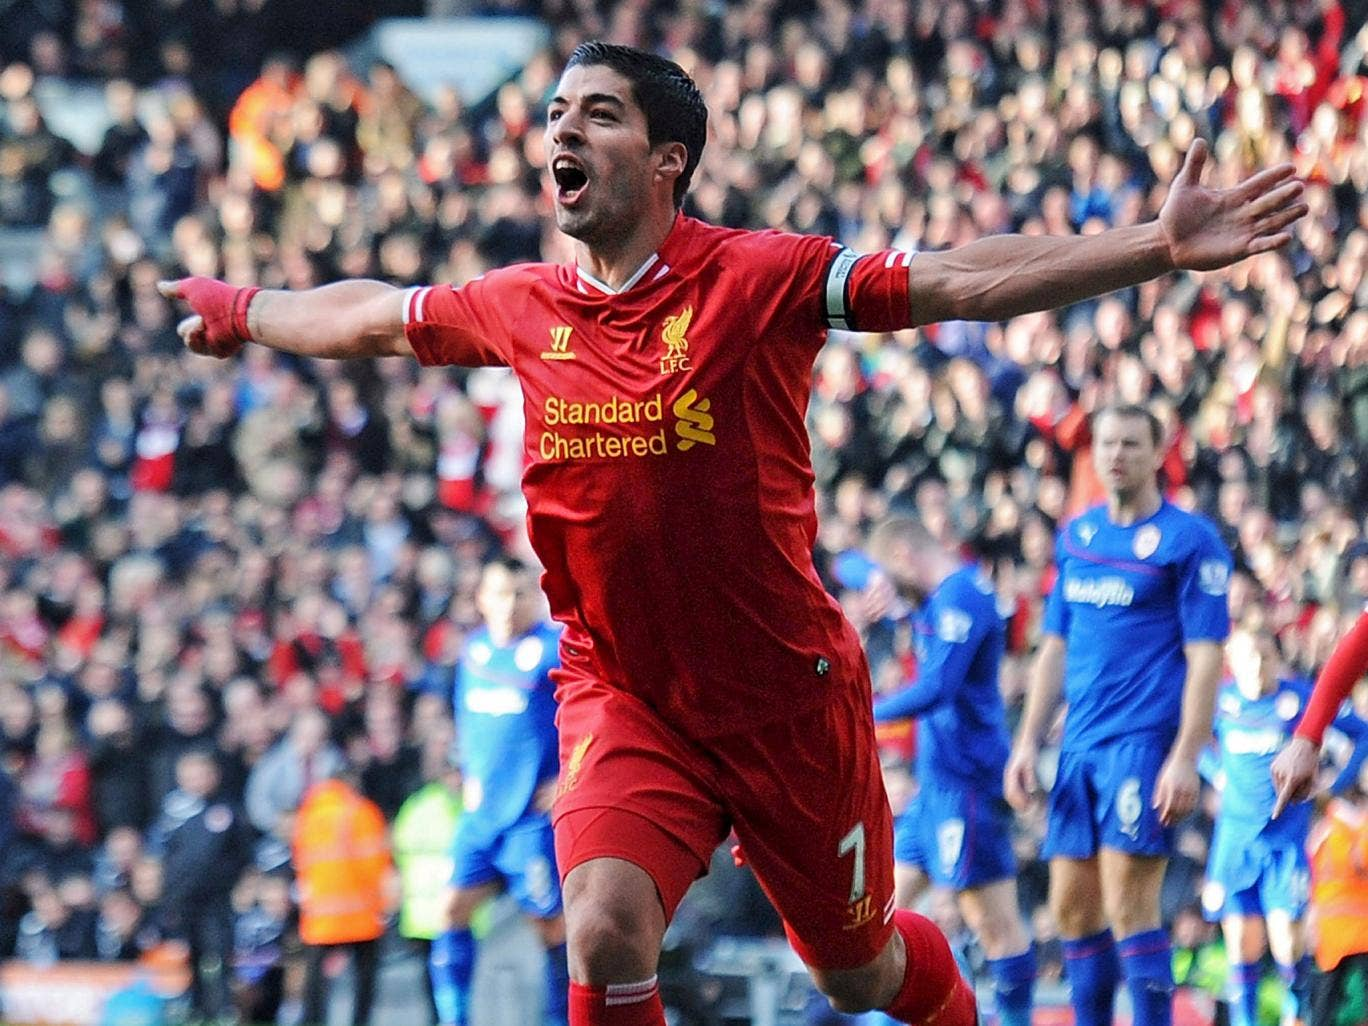 Luis Suarez faces Manchester City today having scored 19 Premier League goals in just 12 games for Liverpool this season